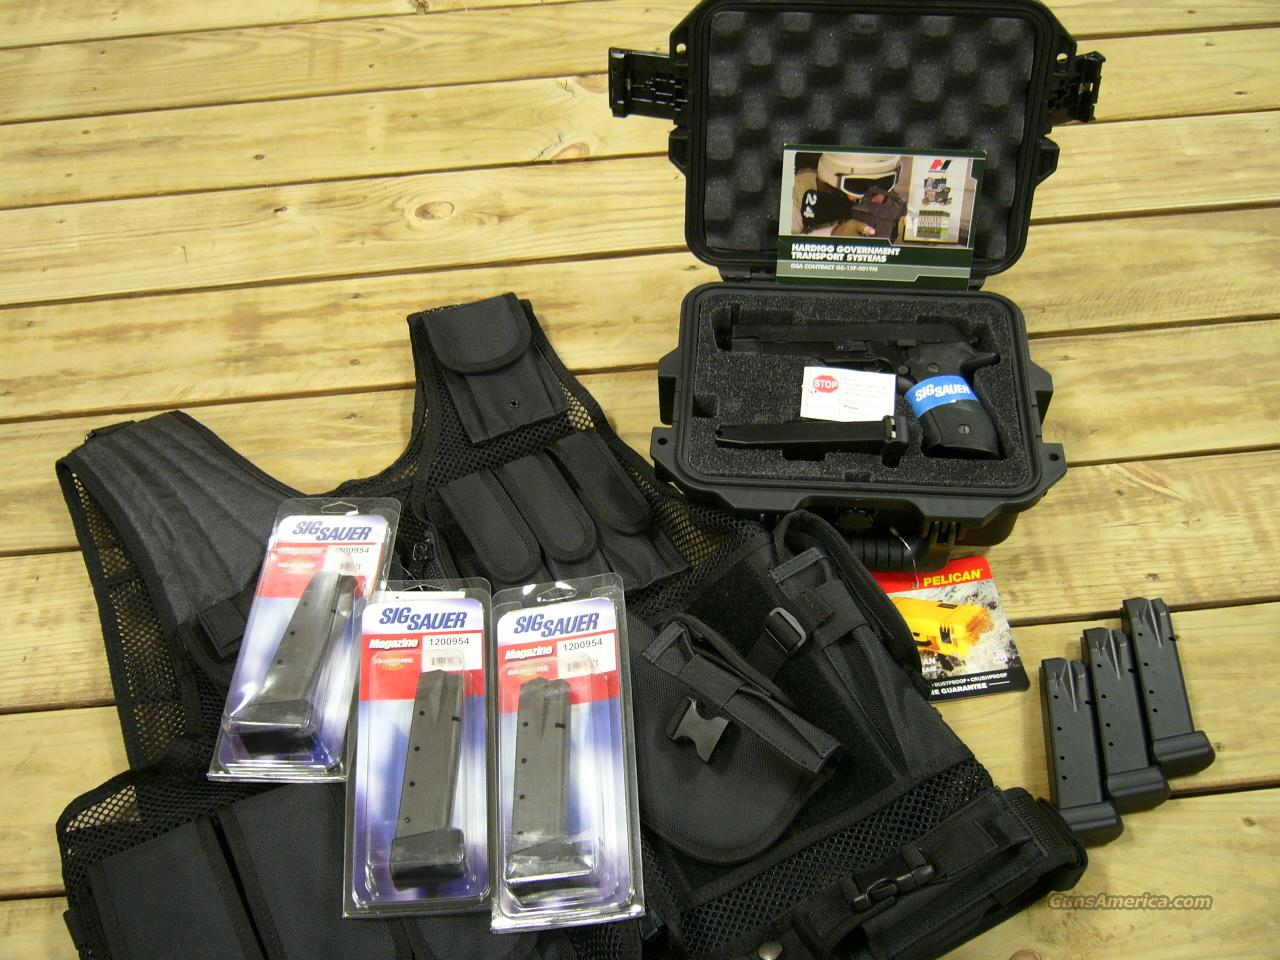 BLACKWATER CUSTOM FIVE 20 ROUND MAGS SIG SAUER LIMITED RUN IN STOCK 9mm HIGH CAPACITY  Guns > Pistols > Sig - Sauer/Sigarms Pistols > P226